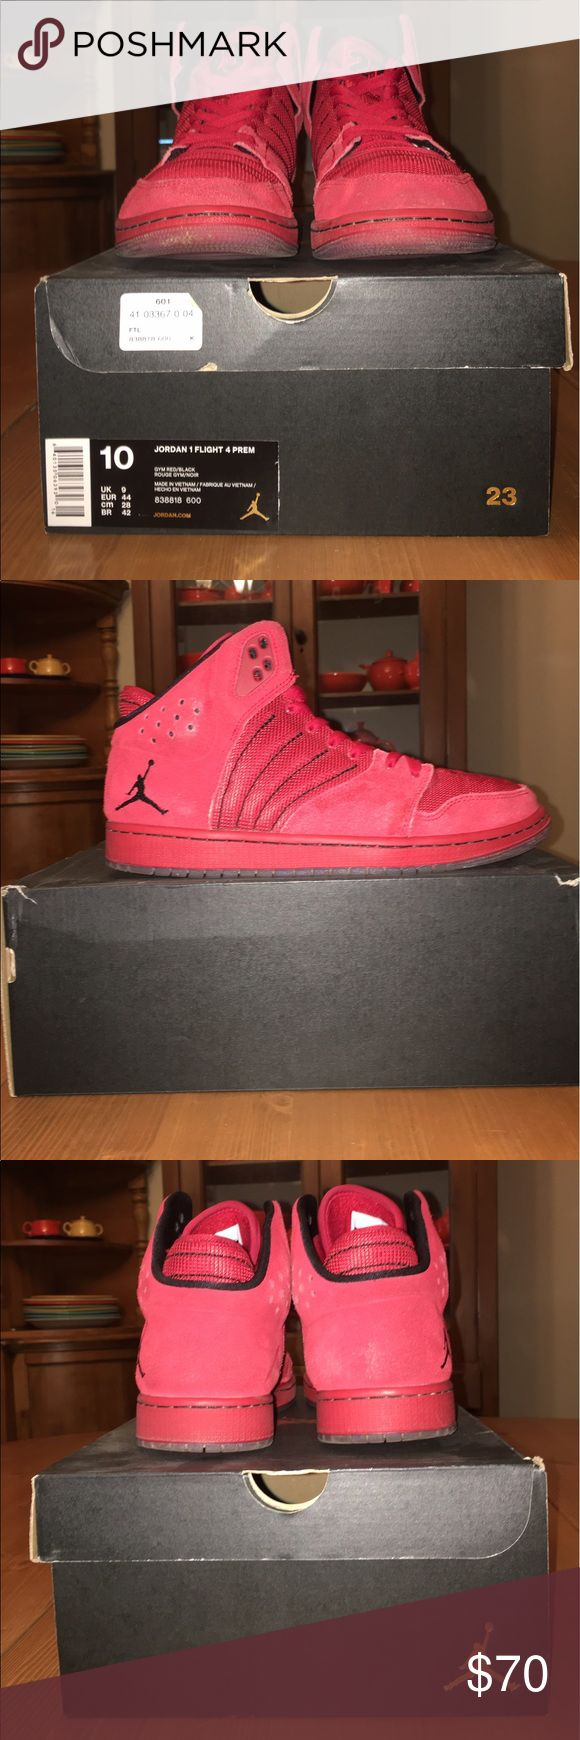 Jordan 1 Flight 4 Premium Jordan 1 Flight 4 Premium worn 4-5 times, good condition with box Nike Shoes Sneakers